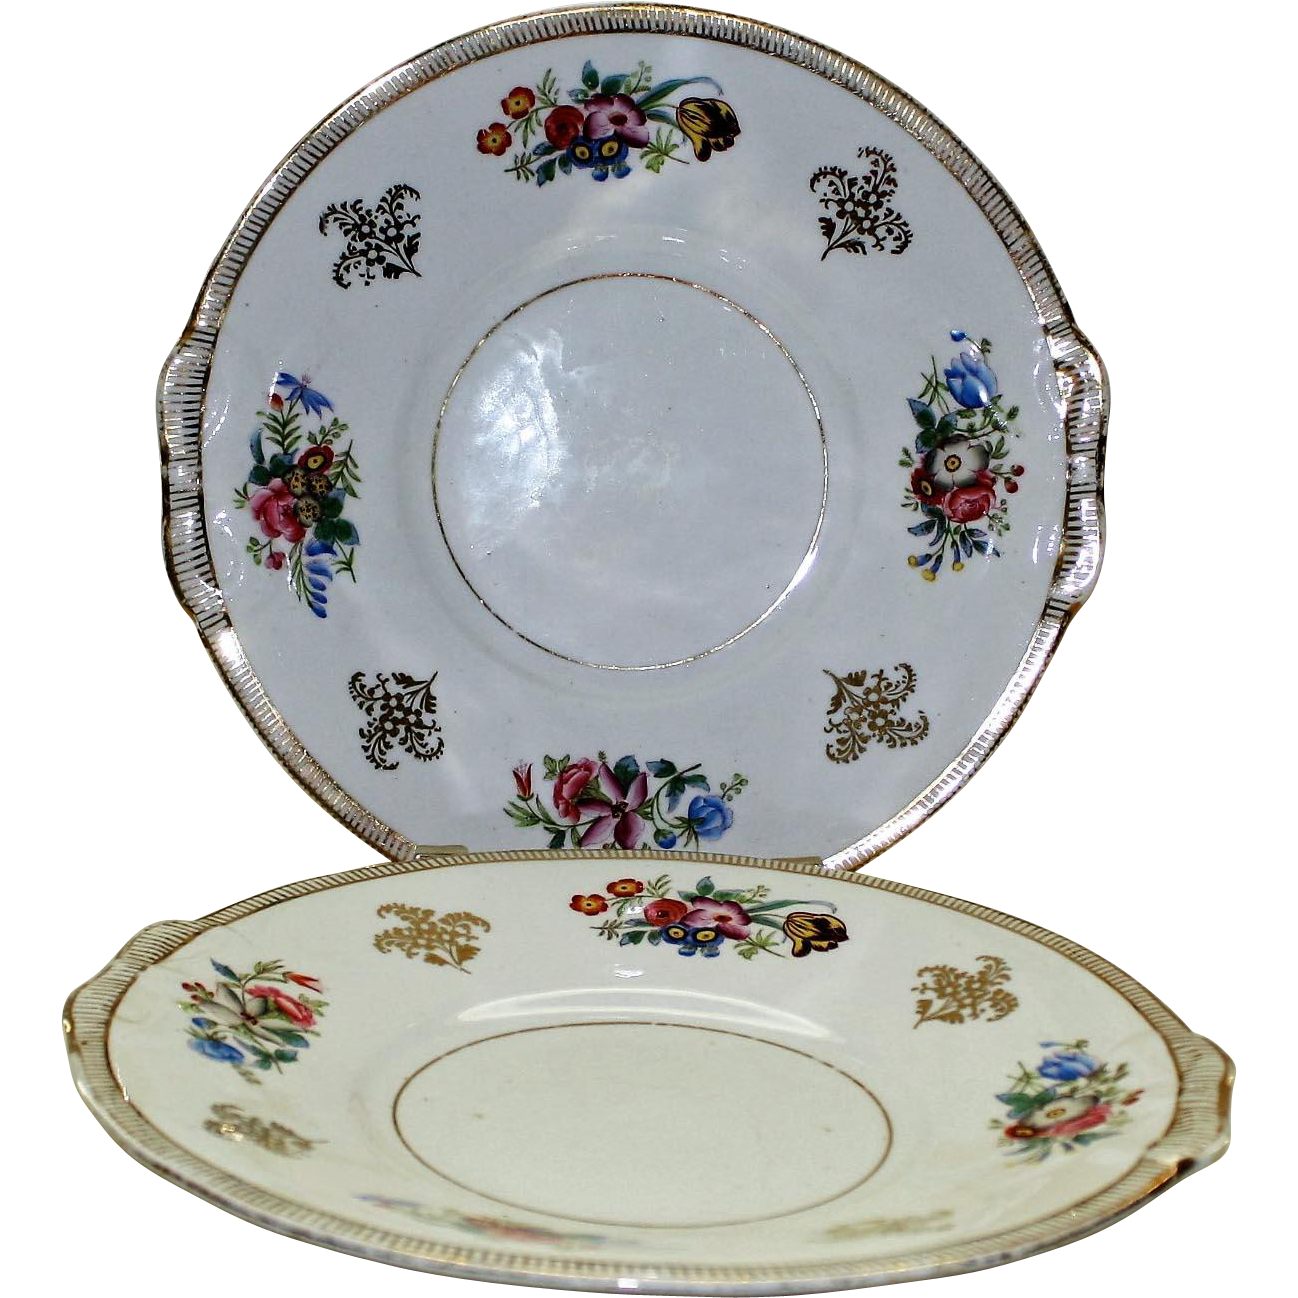 Hand Painted Plates : Pair of antique hand painted cake plates from